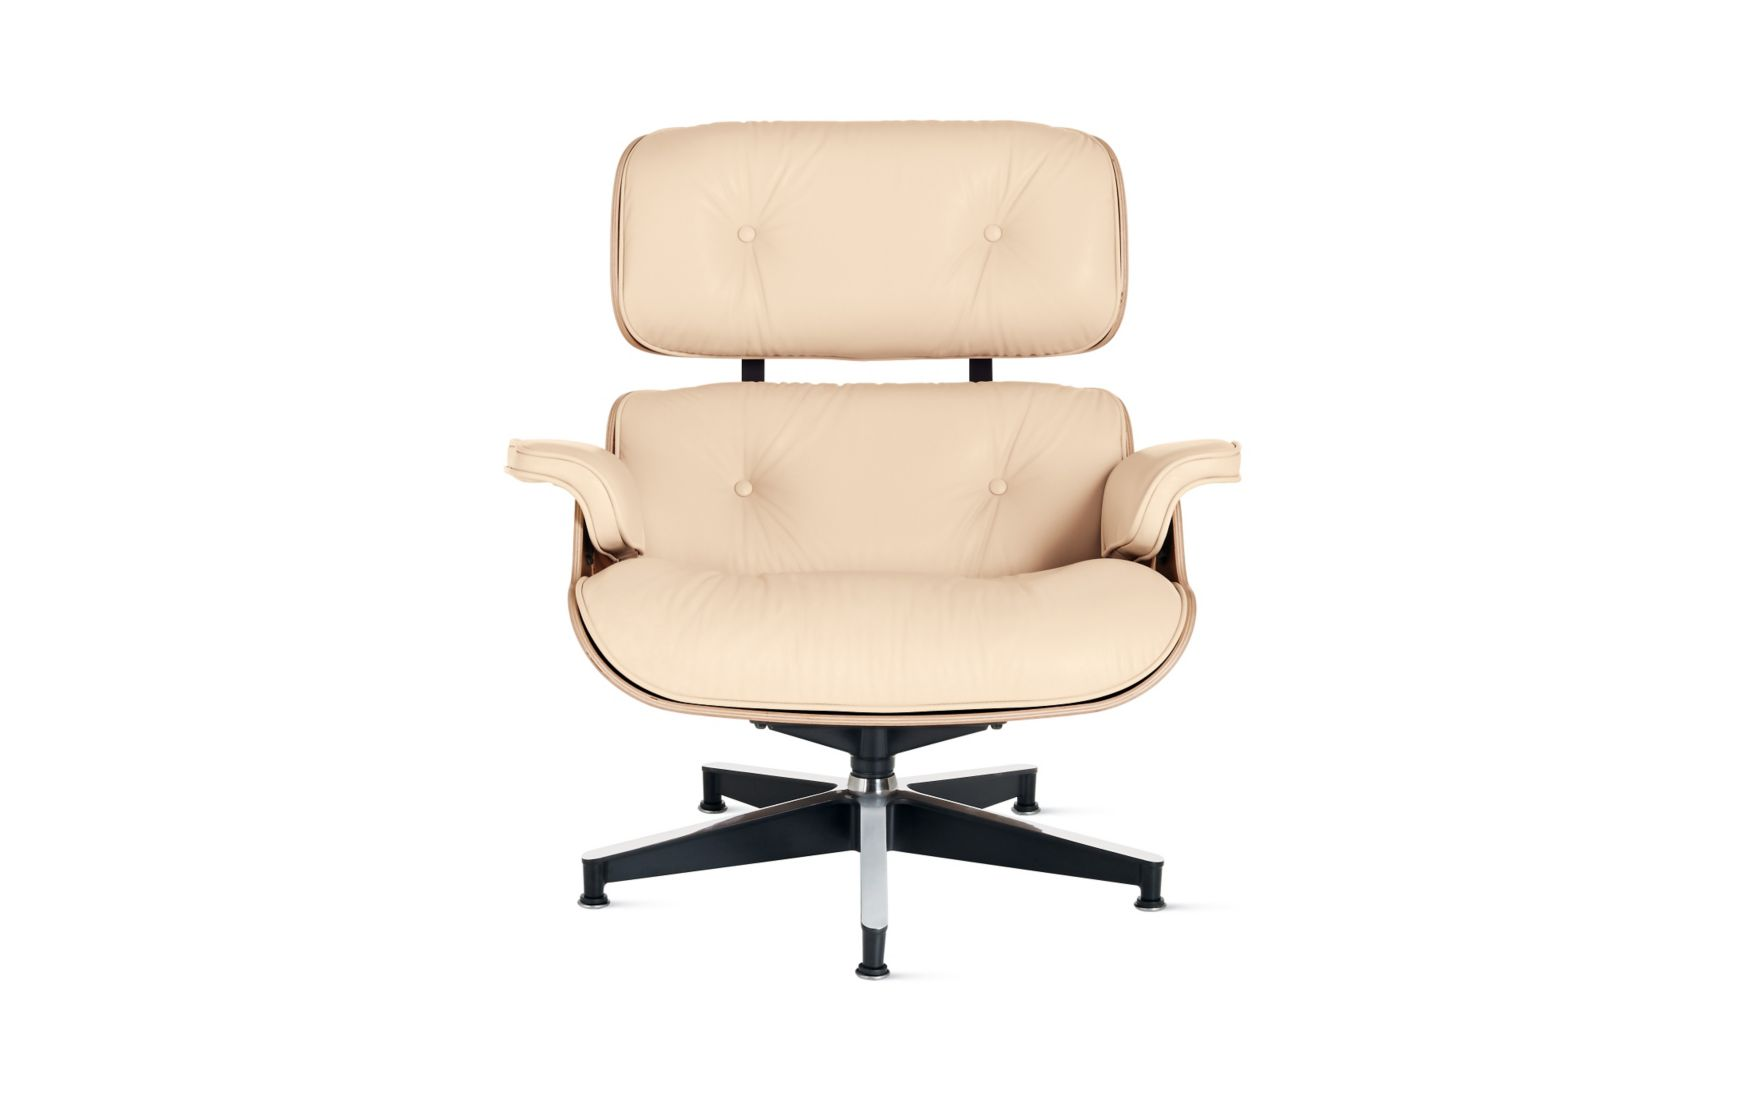 Wondrous Eames Lounge Chair Caraccident5 Cool Chair Designs And Ideas Caraccident5Info